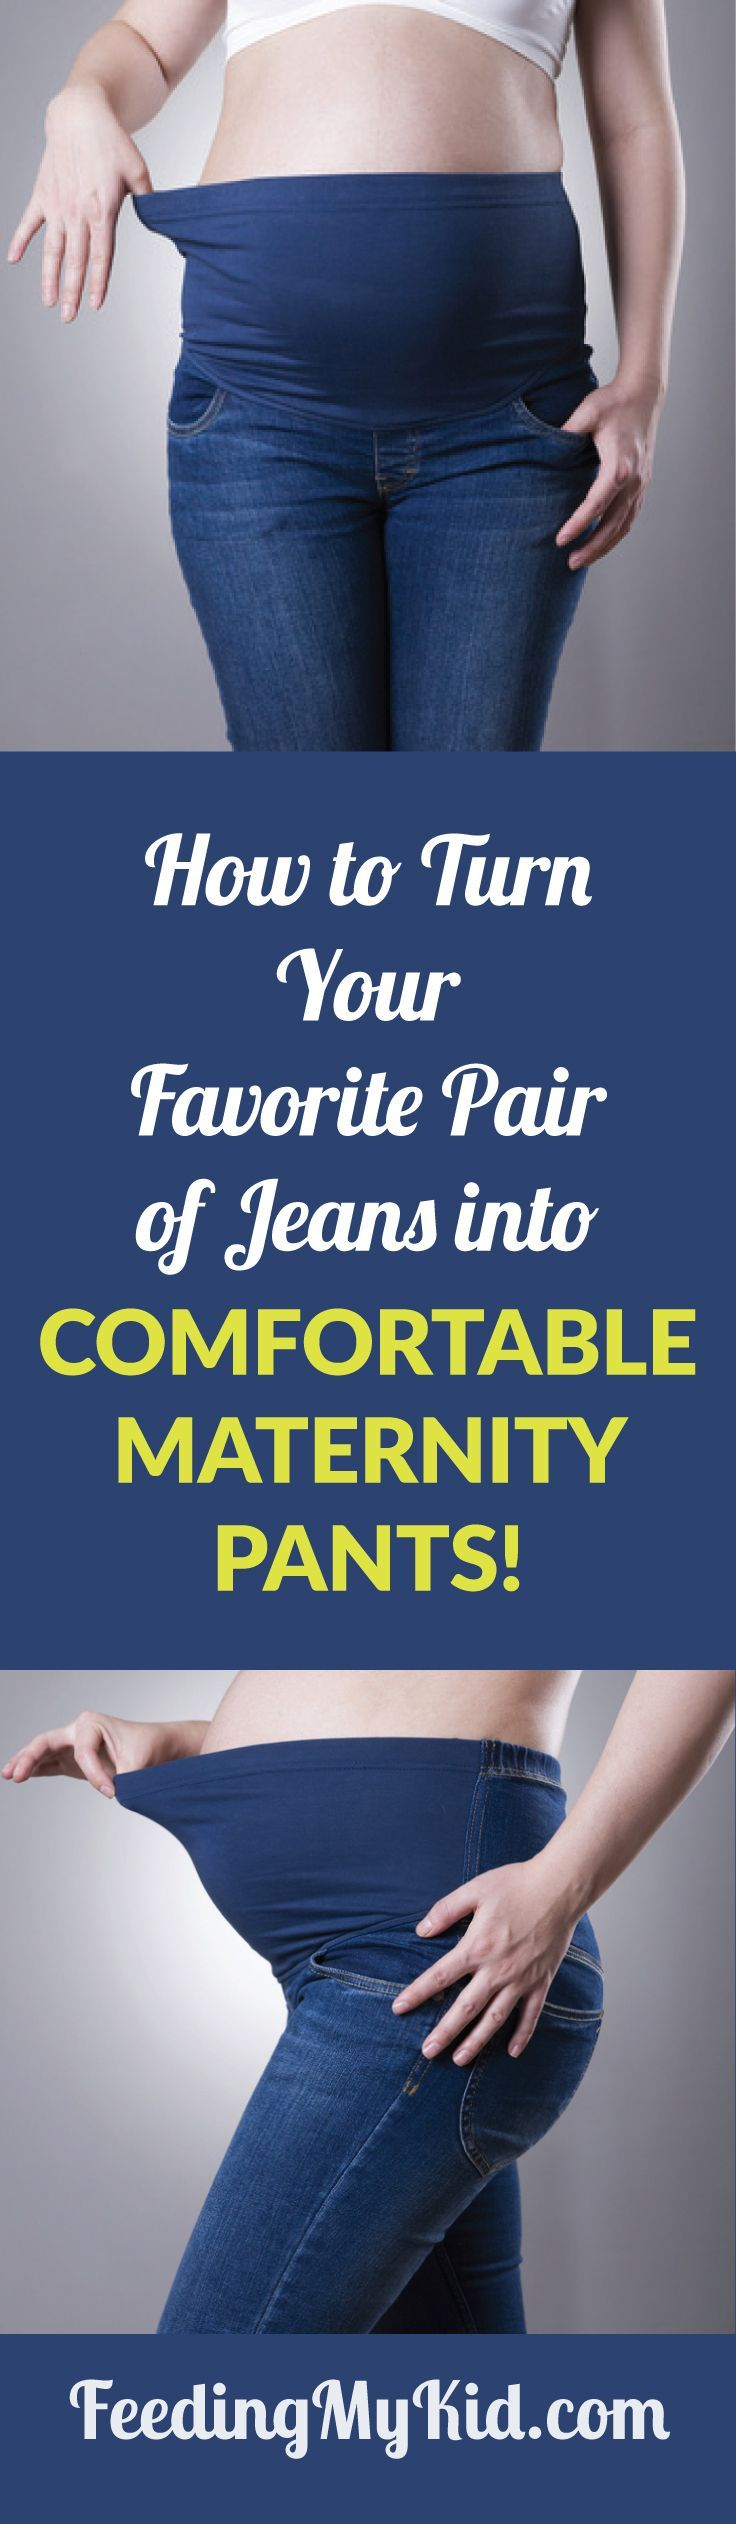 This is a must pin! Are you having trouble finding maternity jeans? Check out this video on how to turn your favorite jeans into maternity pants.  Feeding My Kid is filled with all the information you need about how to raise your kids, from healthy tips to nutritious recipes. #FeedingMyKid #maternitywear #maternityjeans #pregnancy